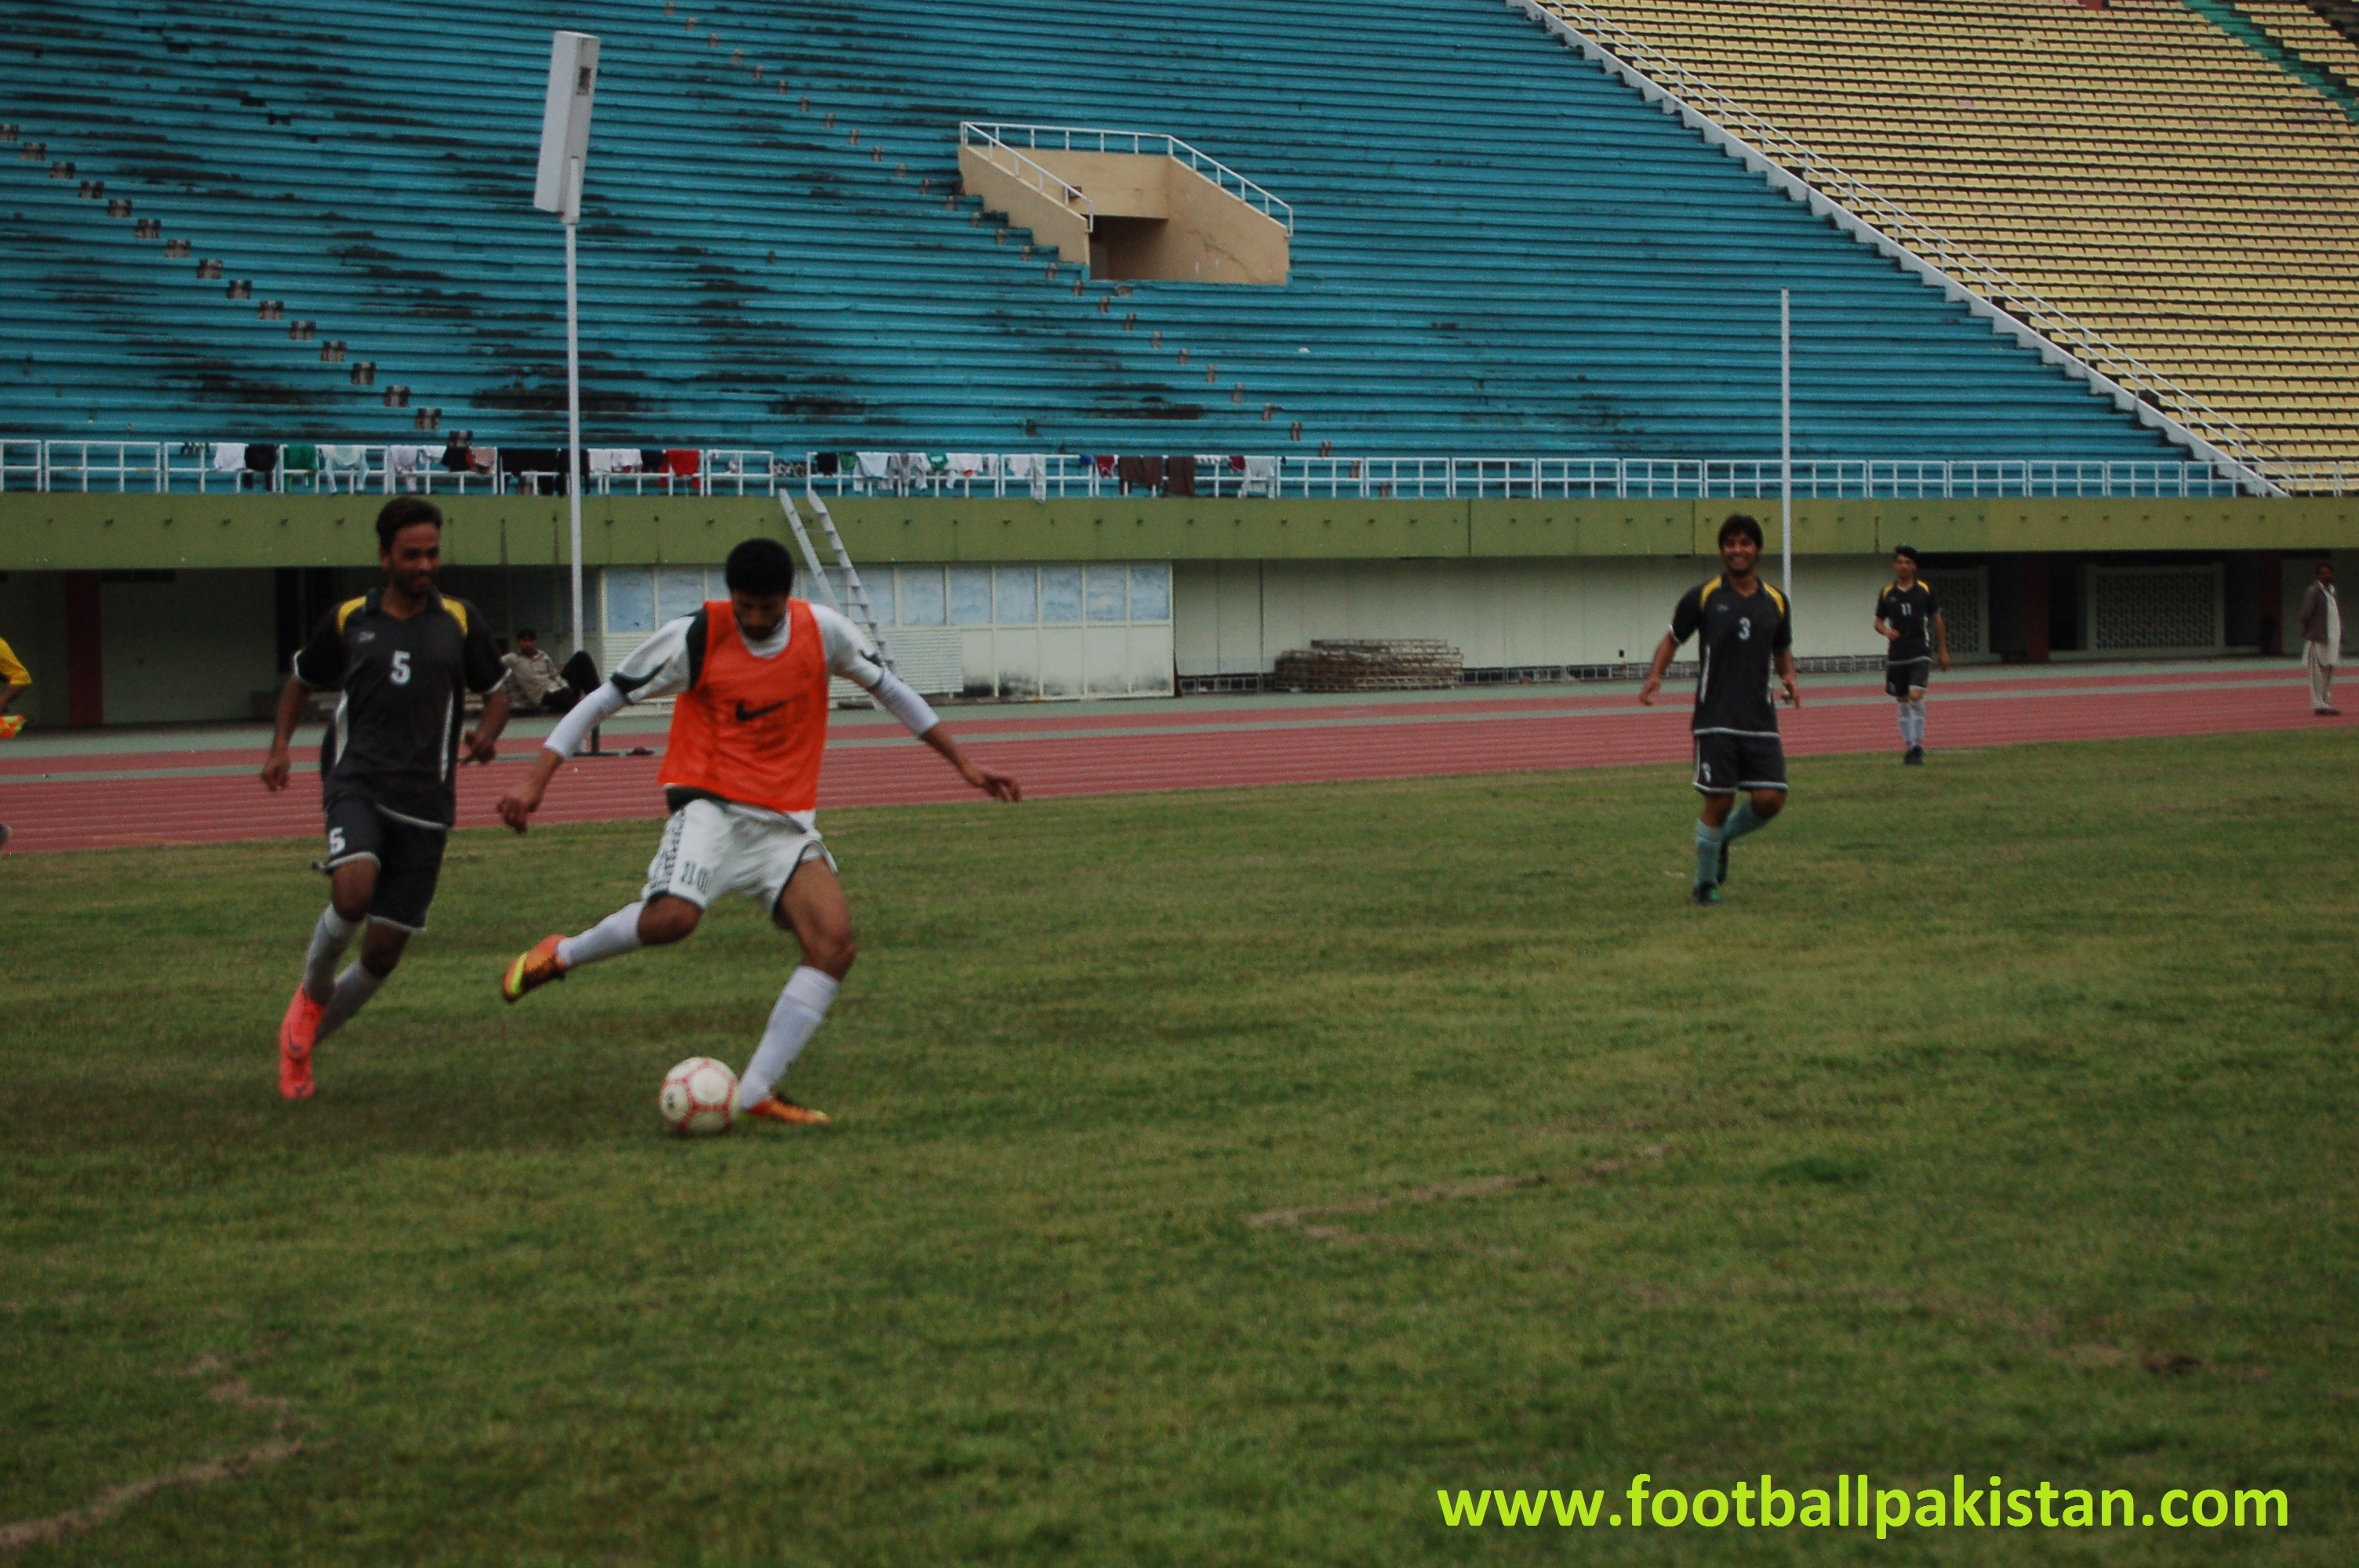 Exclusive Pictures: KRL FC play friendlies against Islamabad XI